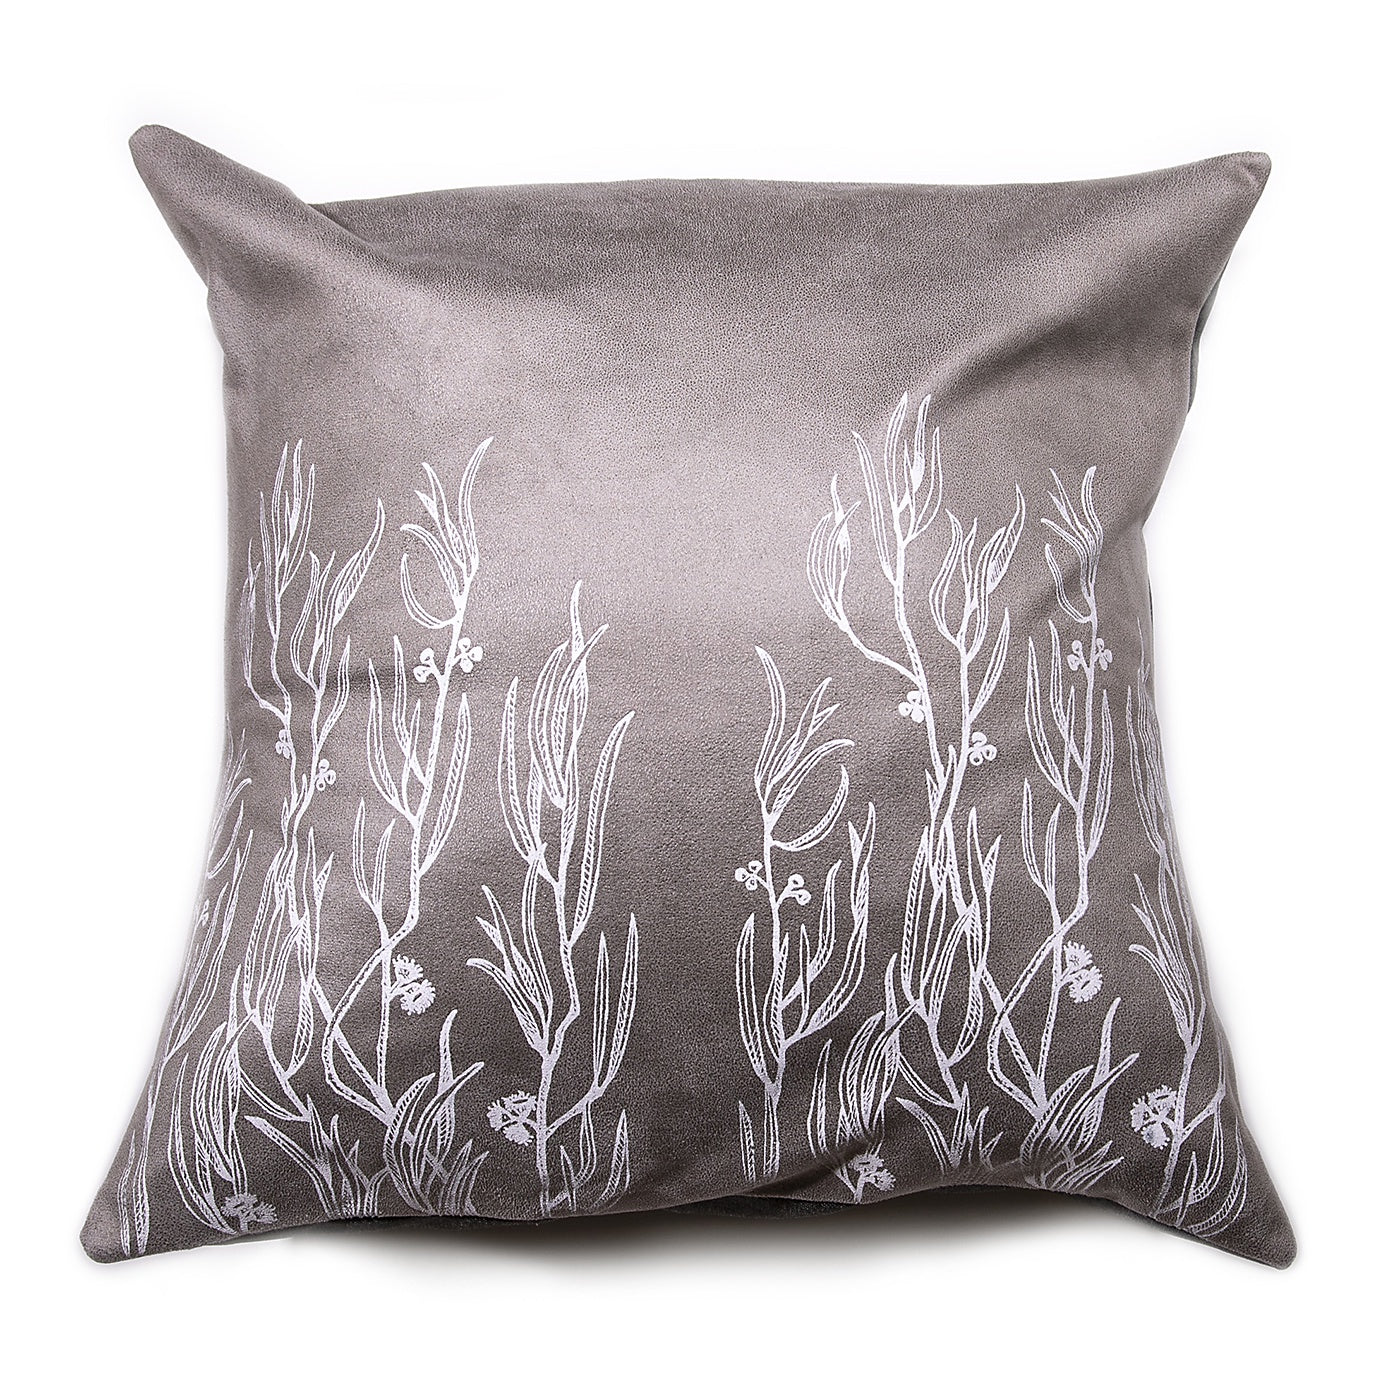 Stalley Textile Co. - Cushion Cover - Peppermint - White on Light Grey